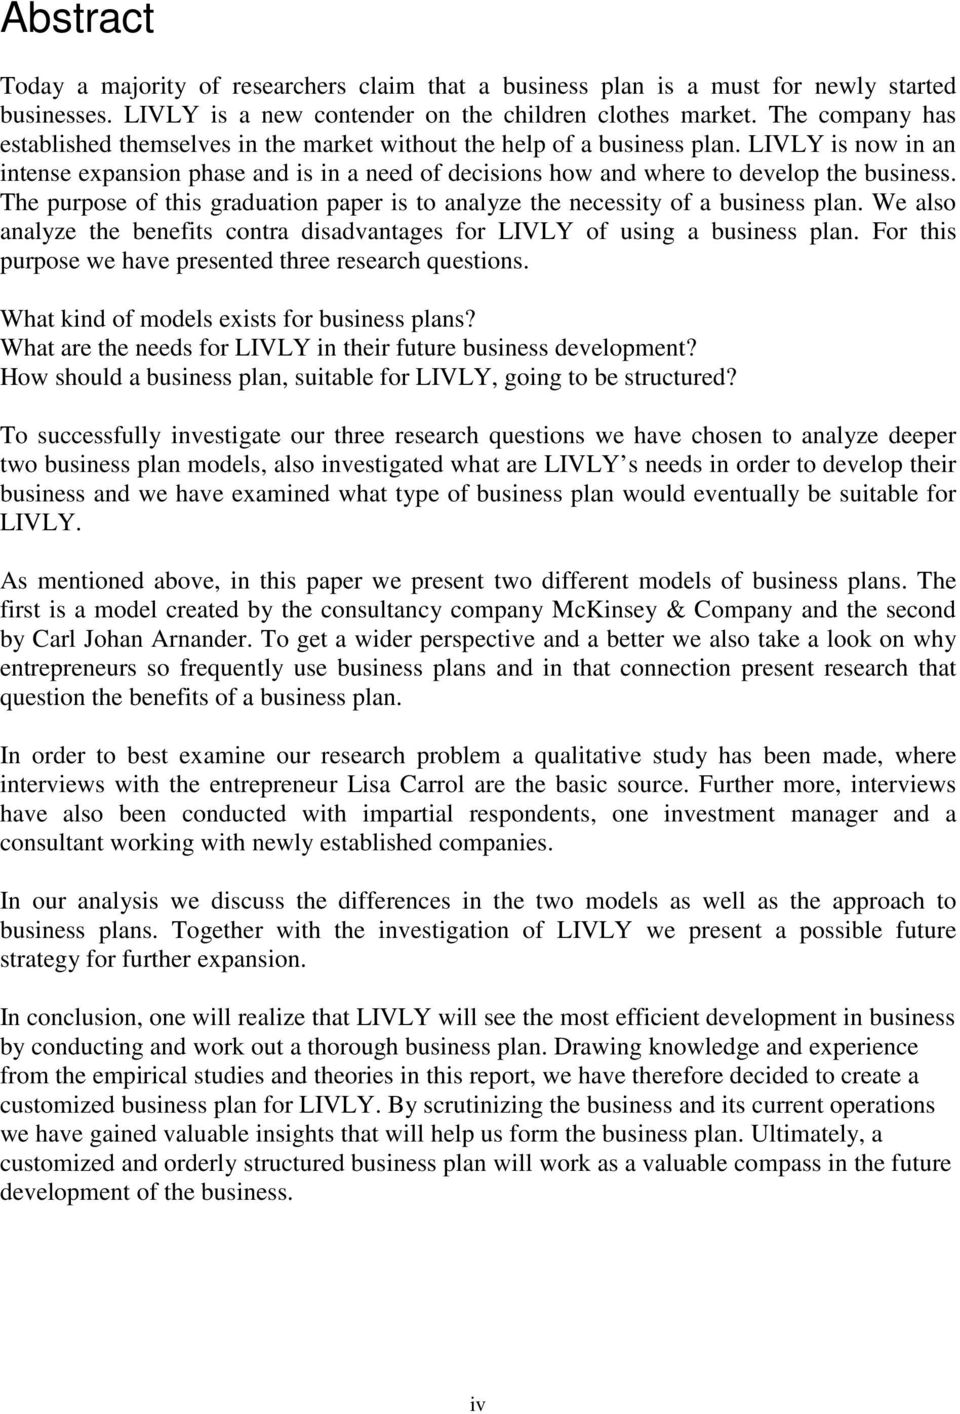 LIVLY is now in an intense expansion phase and is in a need of decisions how and where to develop the business. The purpose of this graduation paper is to analyze the necessity of a business plan.